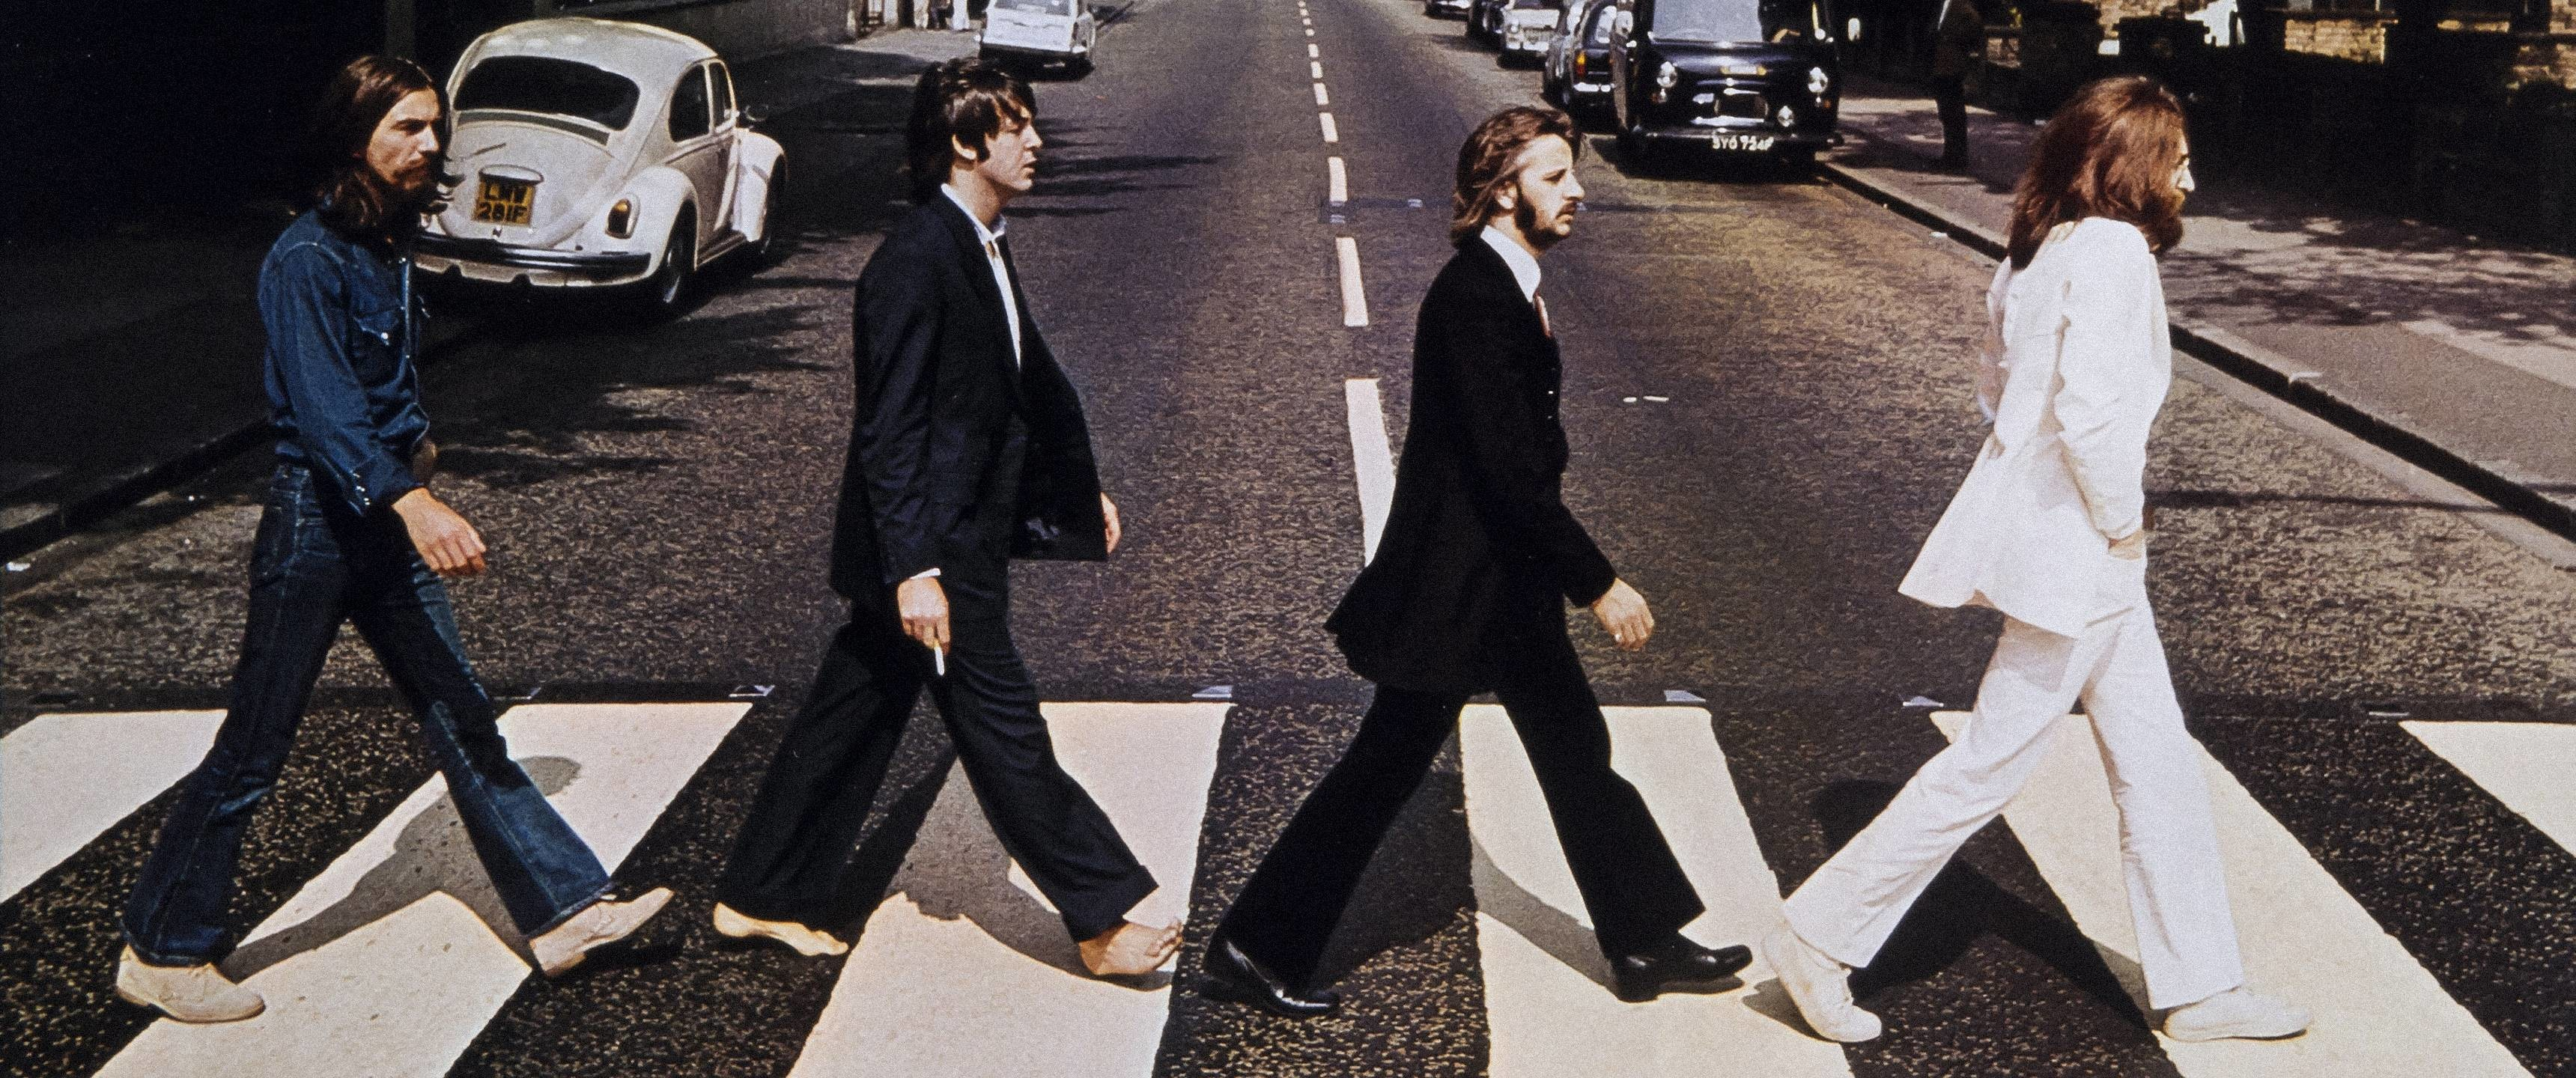 Abbey Road Wallpaper 60 images 3440x1440